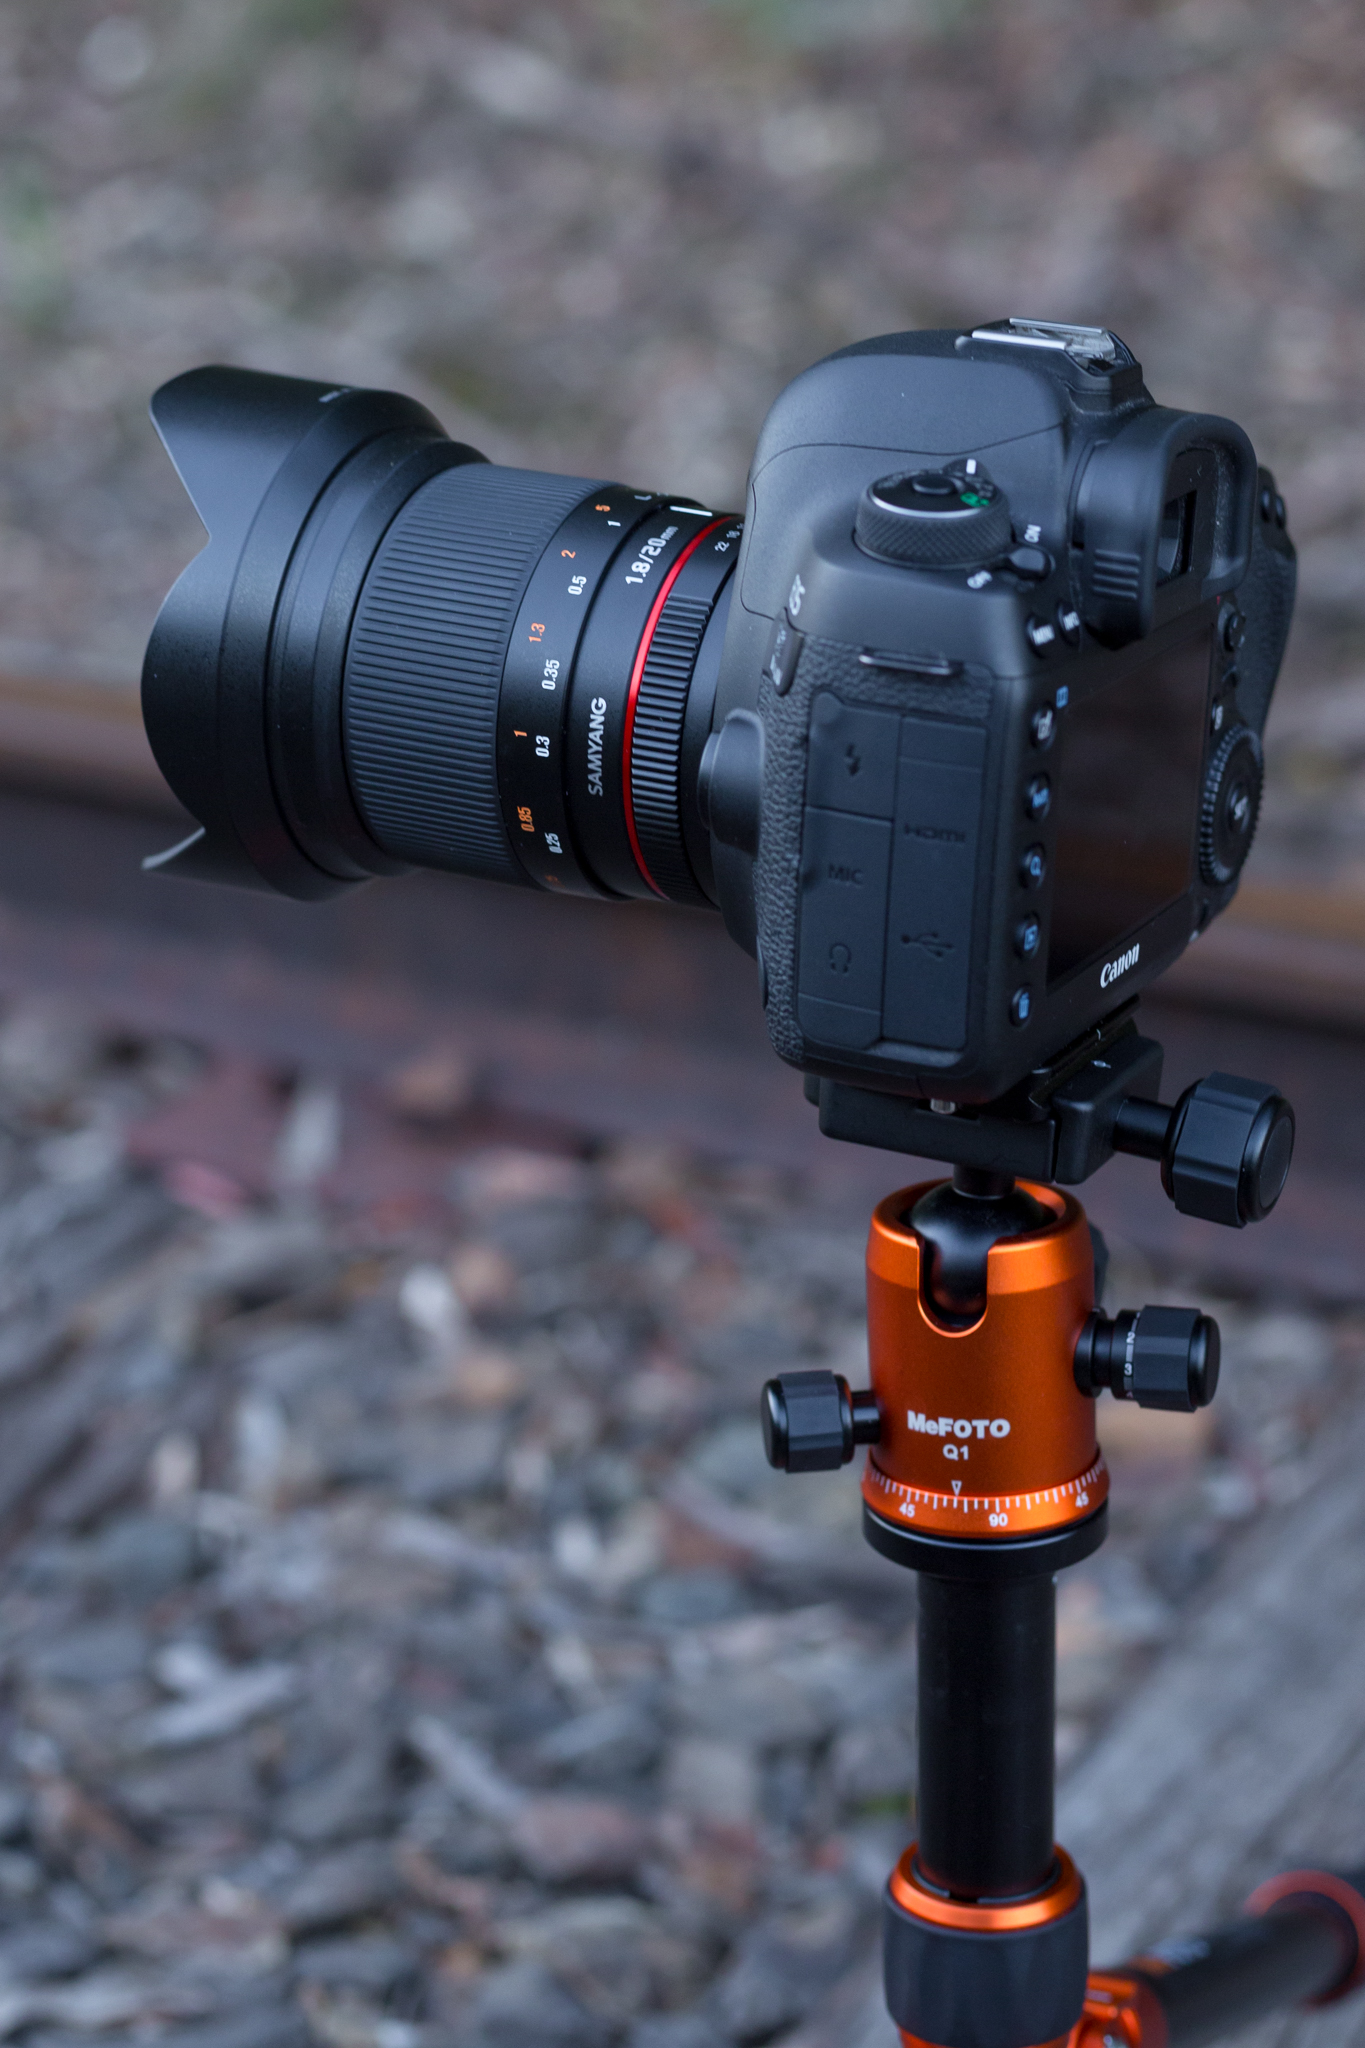 Out catching a sunset then some astro on an old train line. MeFOTO RoadTrip with Canon 5D MK IV and Samyang 20mm f/1.8 lens.